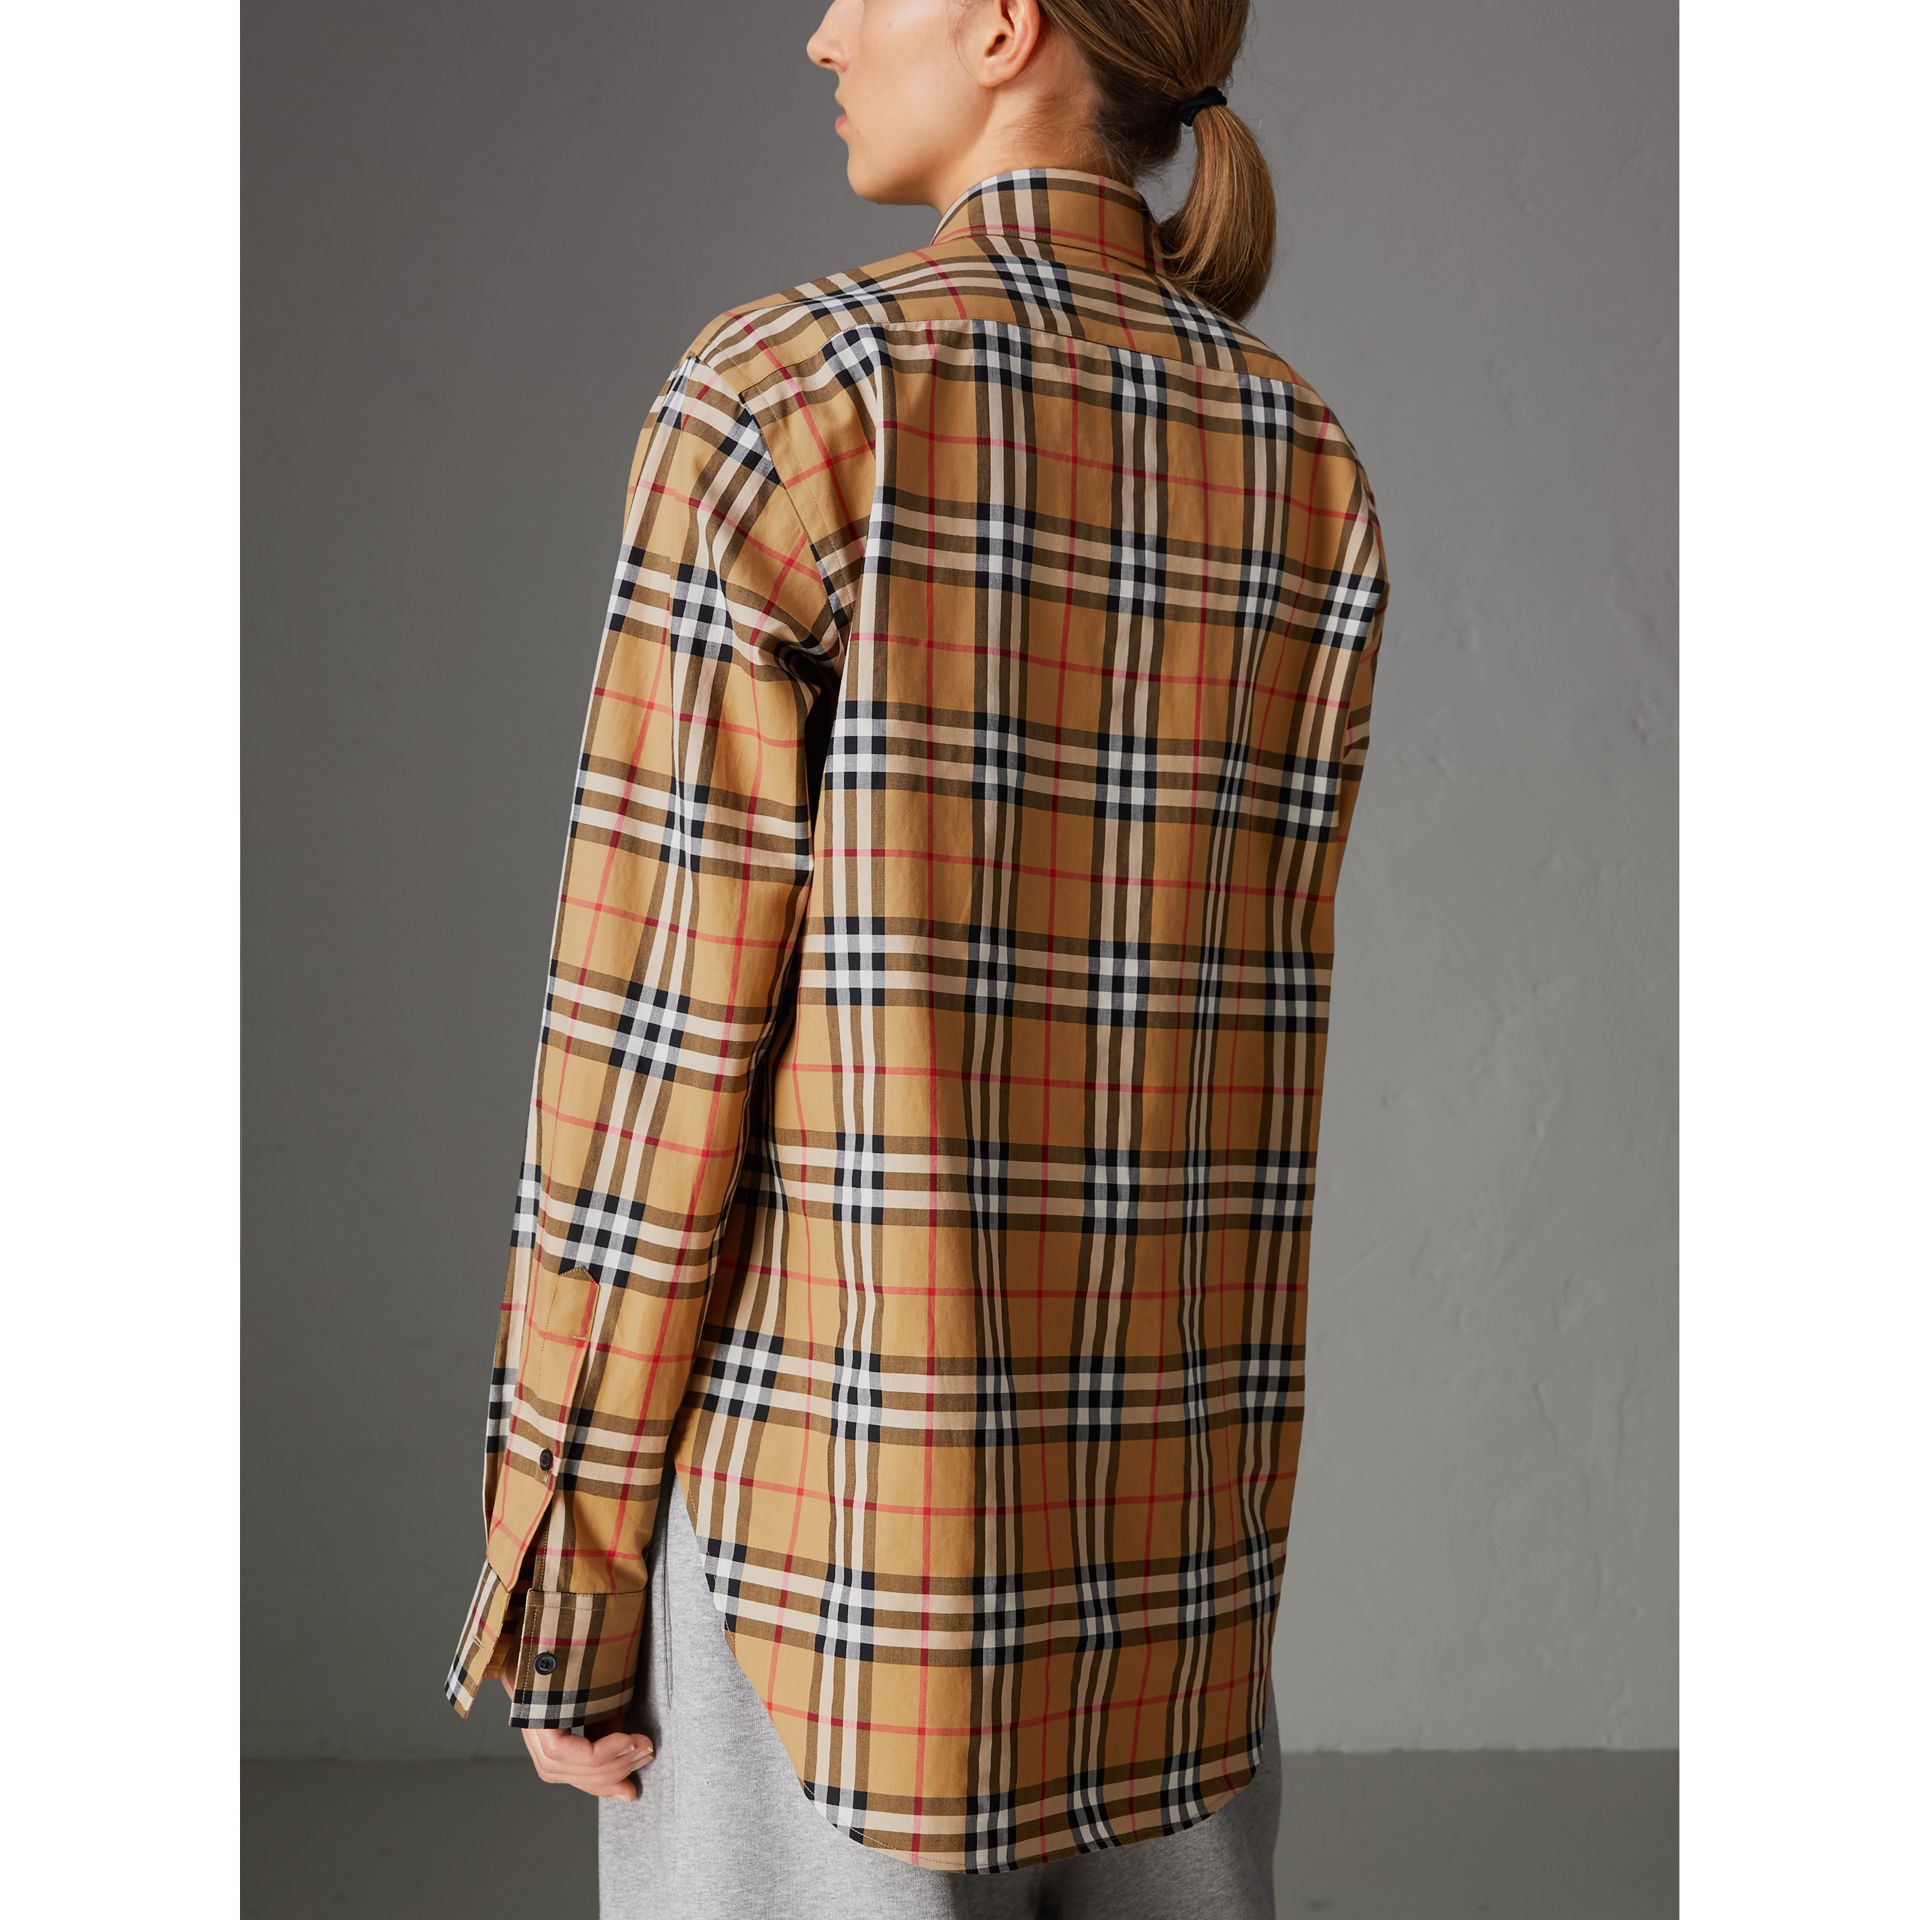 Rainbow Vintage Check Cotton Shirt in Antique Yellow - Women | Burberry Australia - gallery image 2